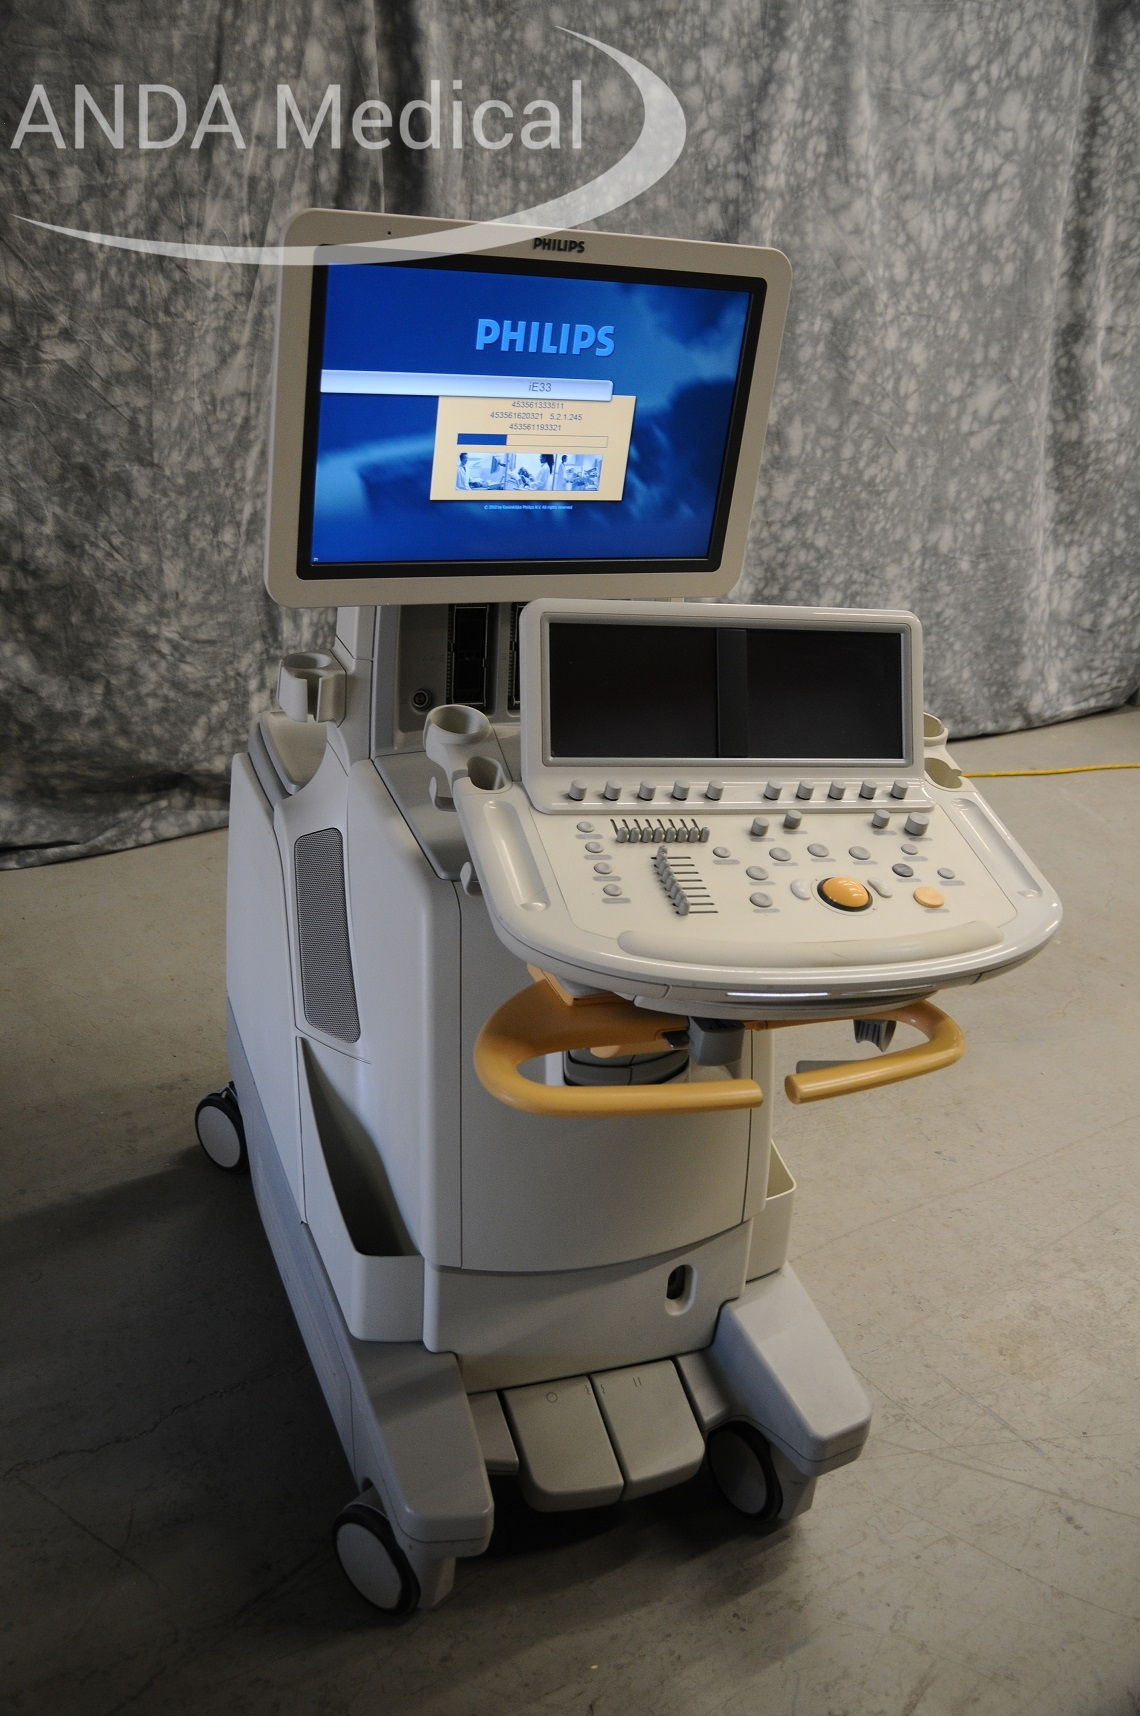 Philips ultrasound device with display